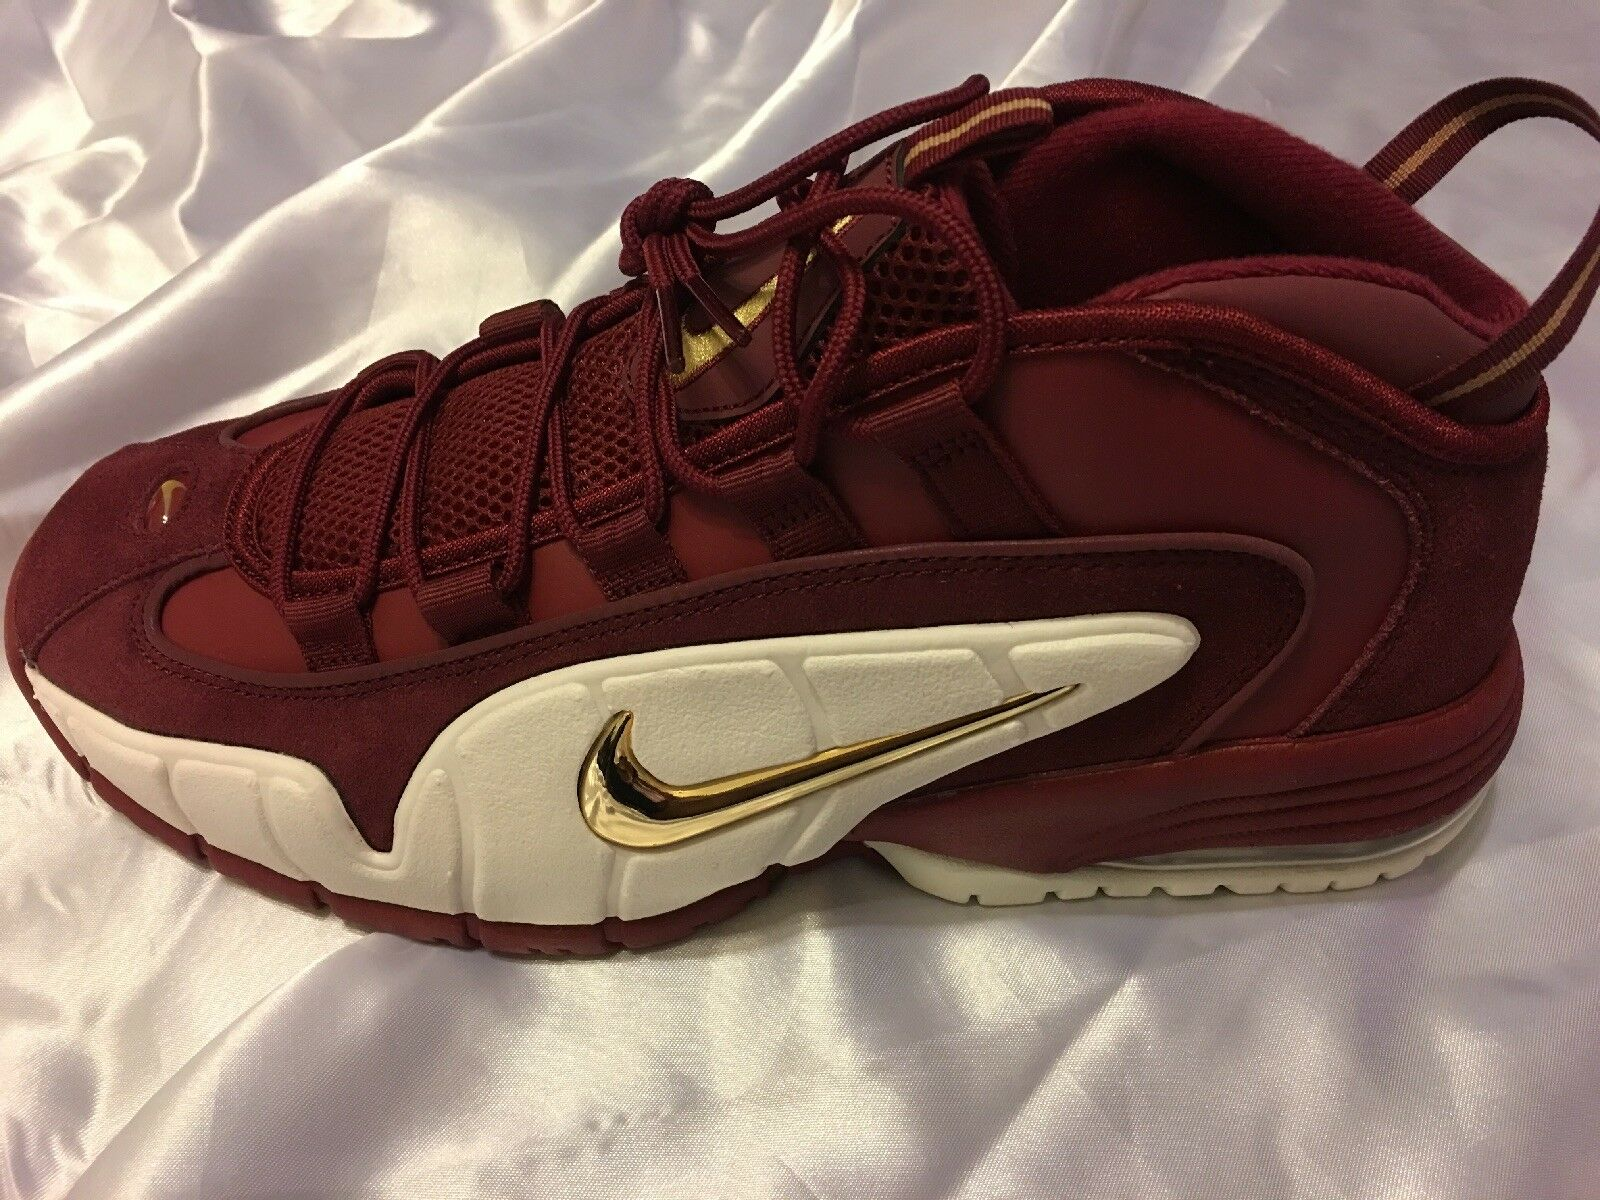 2018 Nike Air Max PENNY Team Red Metallic gold 685153-400 Size 15